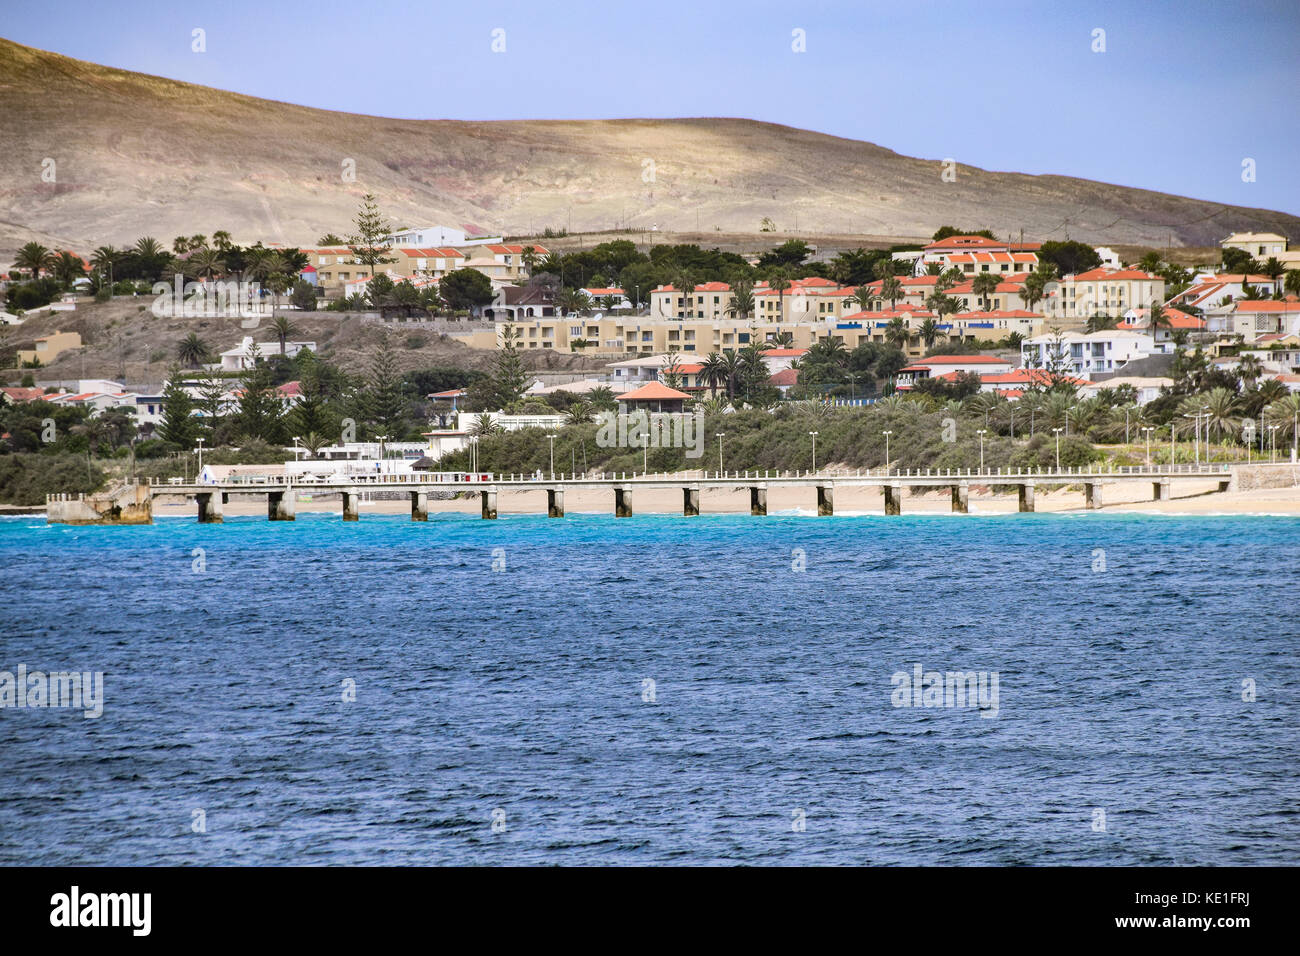 Vila Baleira and the pier, Porto Santo, Portugal - Stock Image